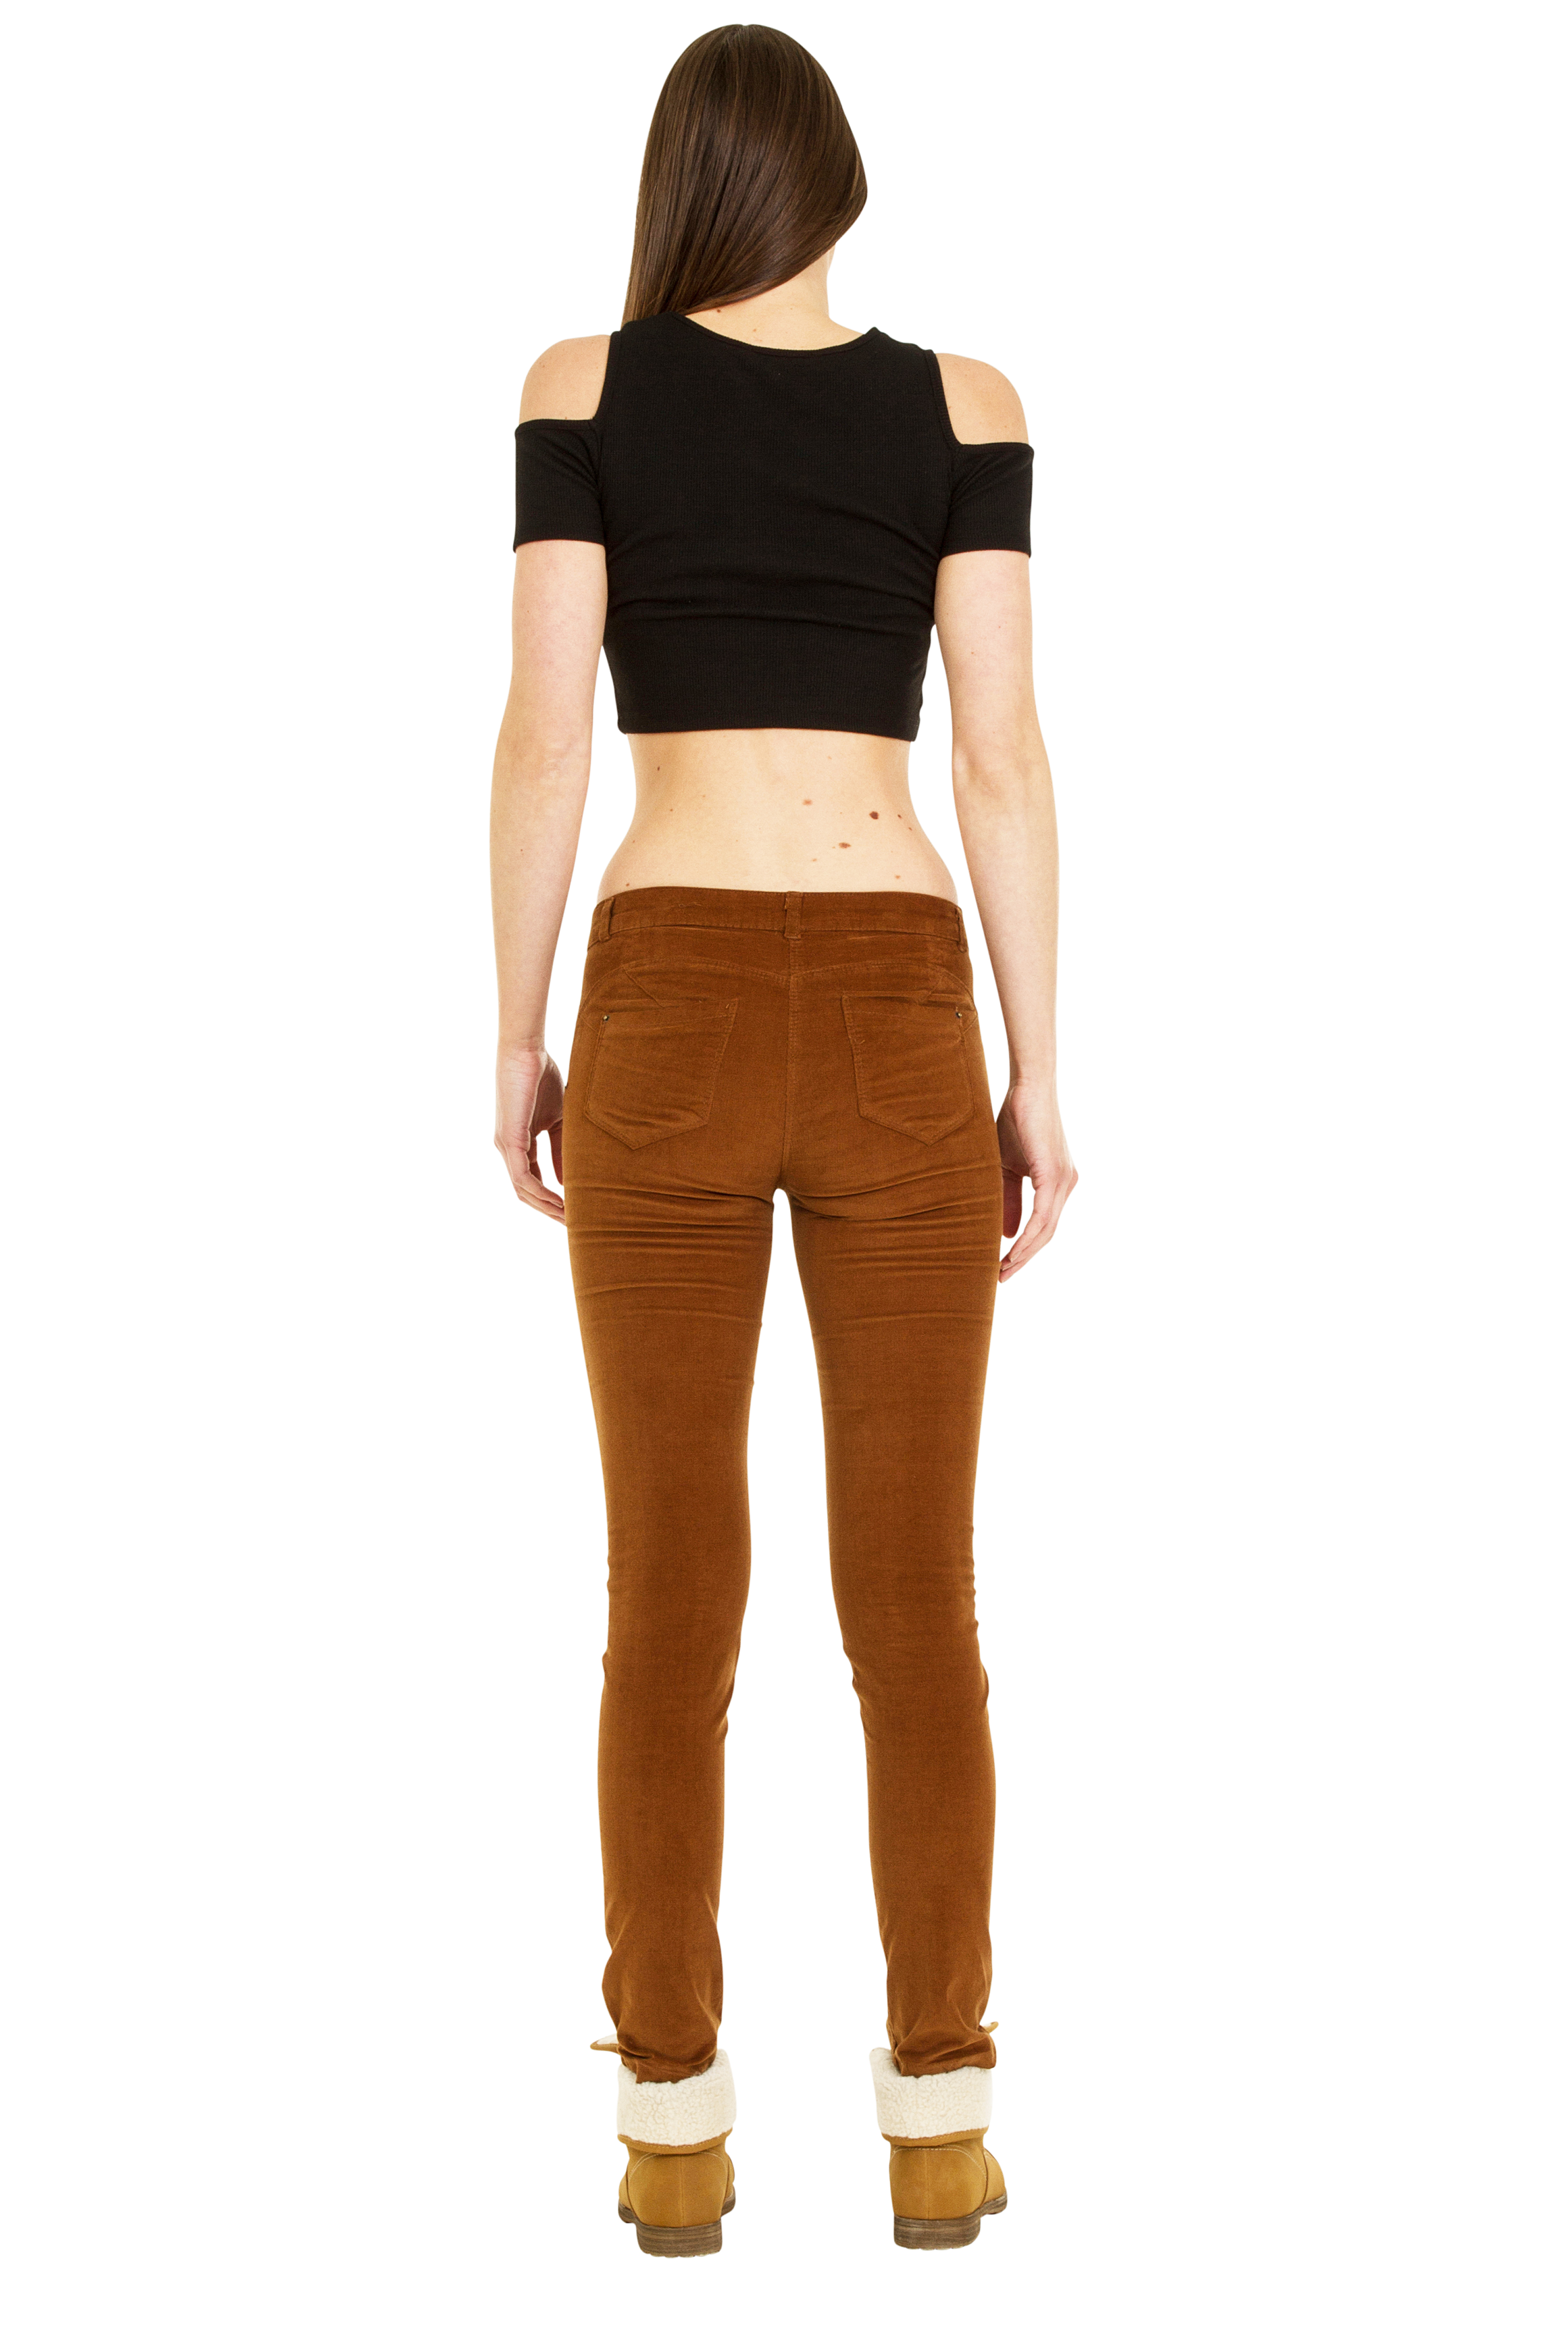 Find great deals on eBay for womens brown corduroy pants. Shop with confidence.